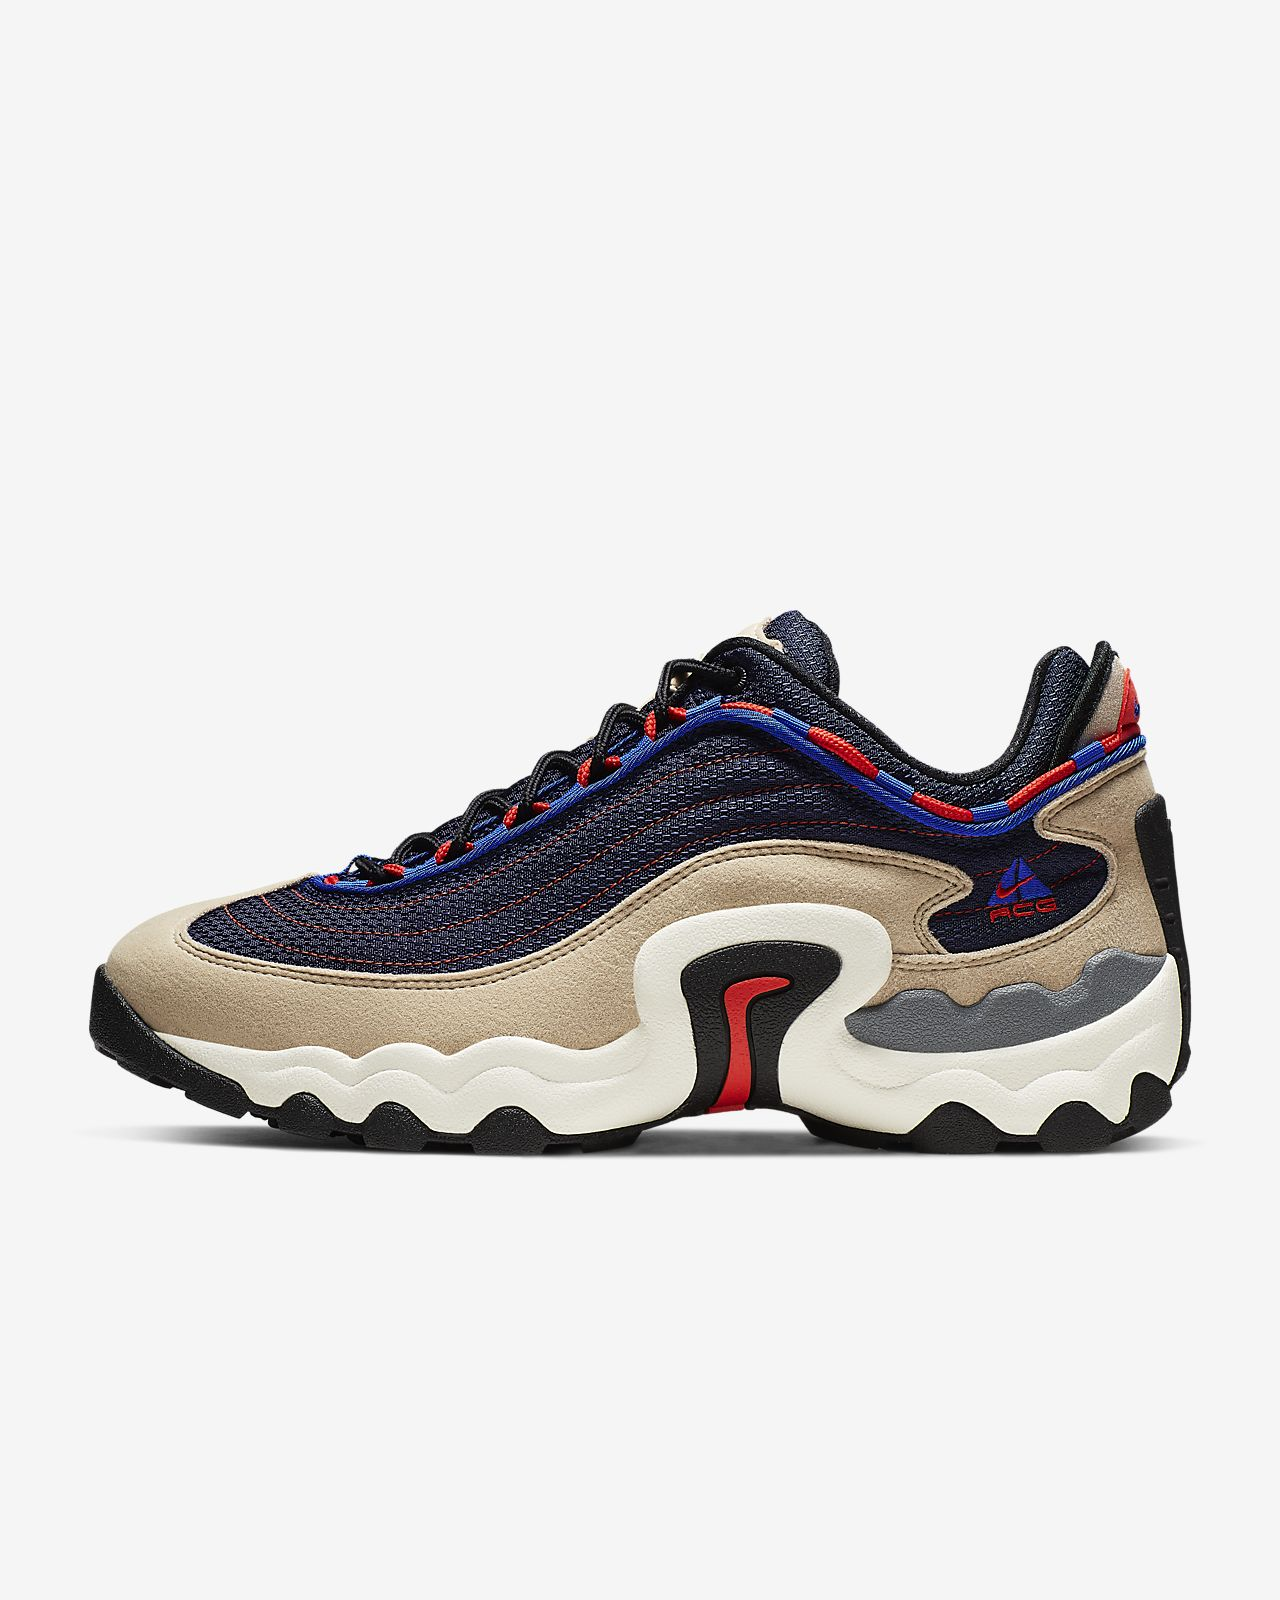 Nike Air Skarn Herenschoen